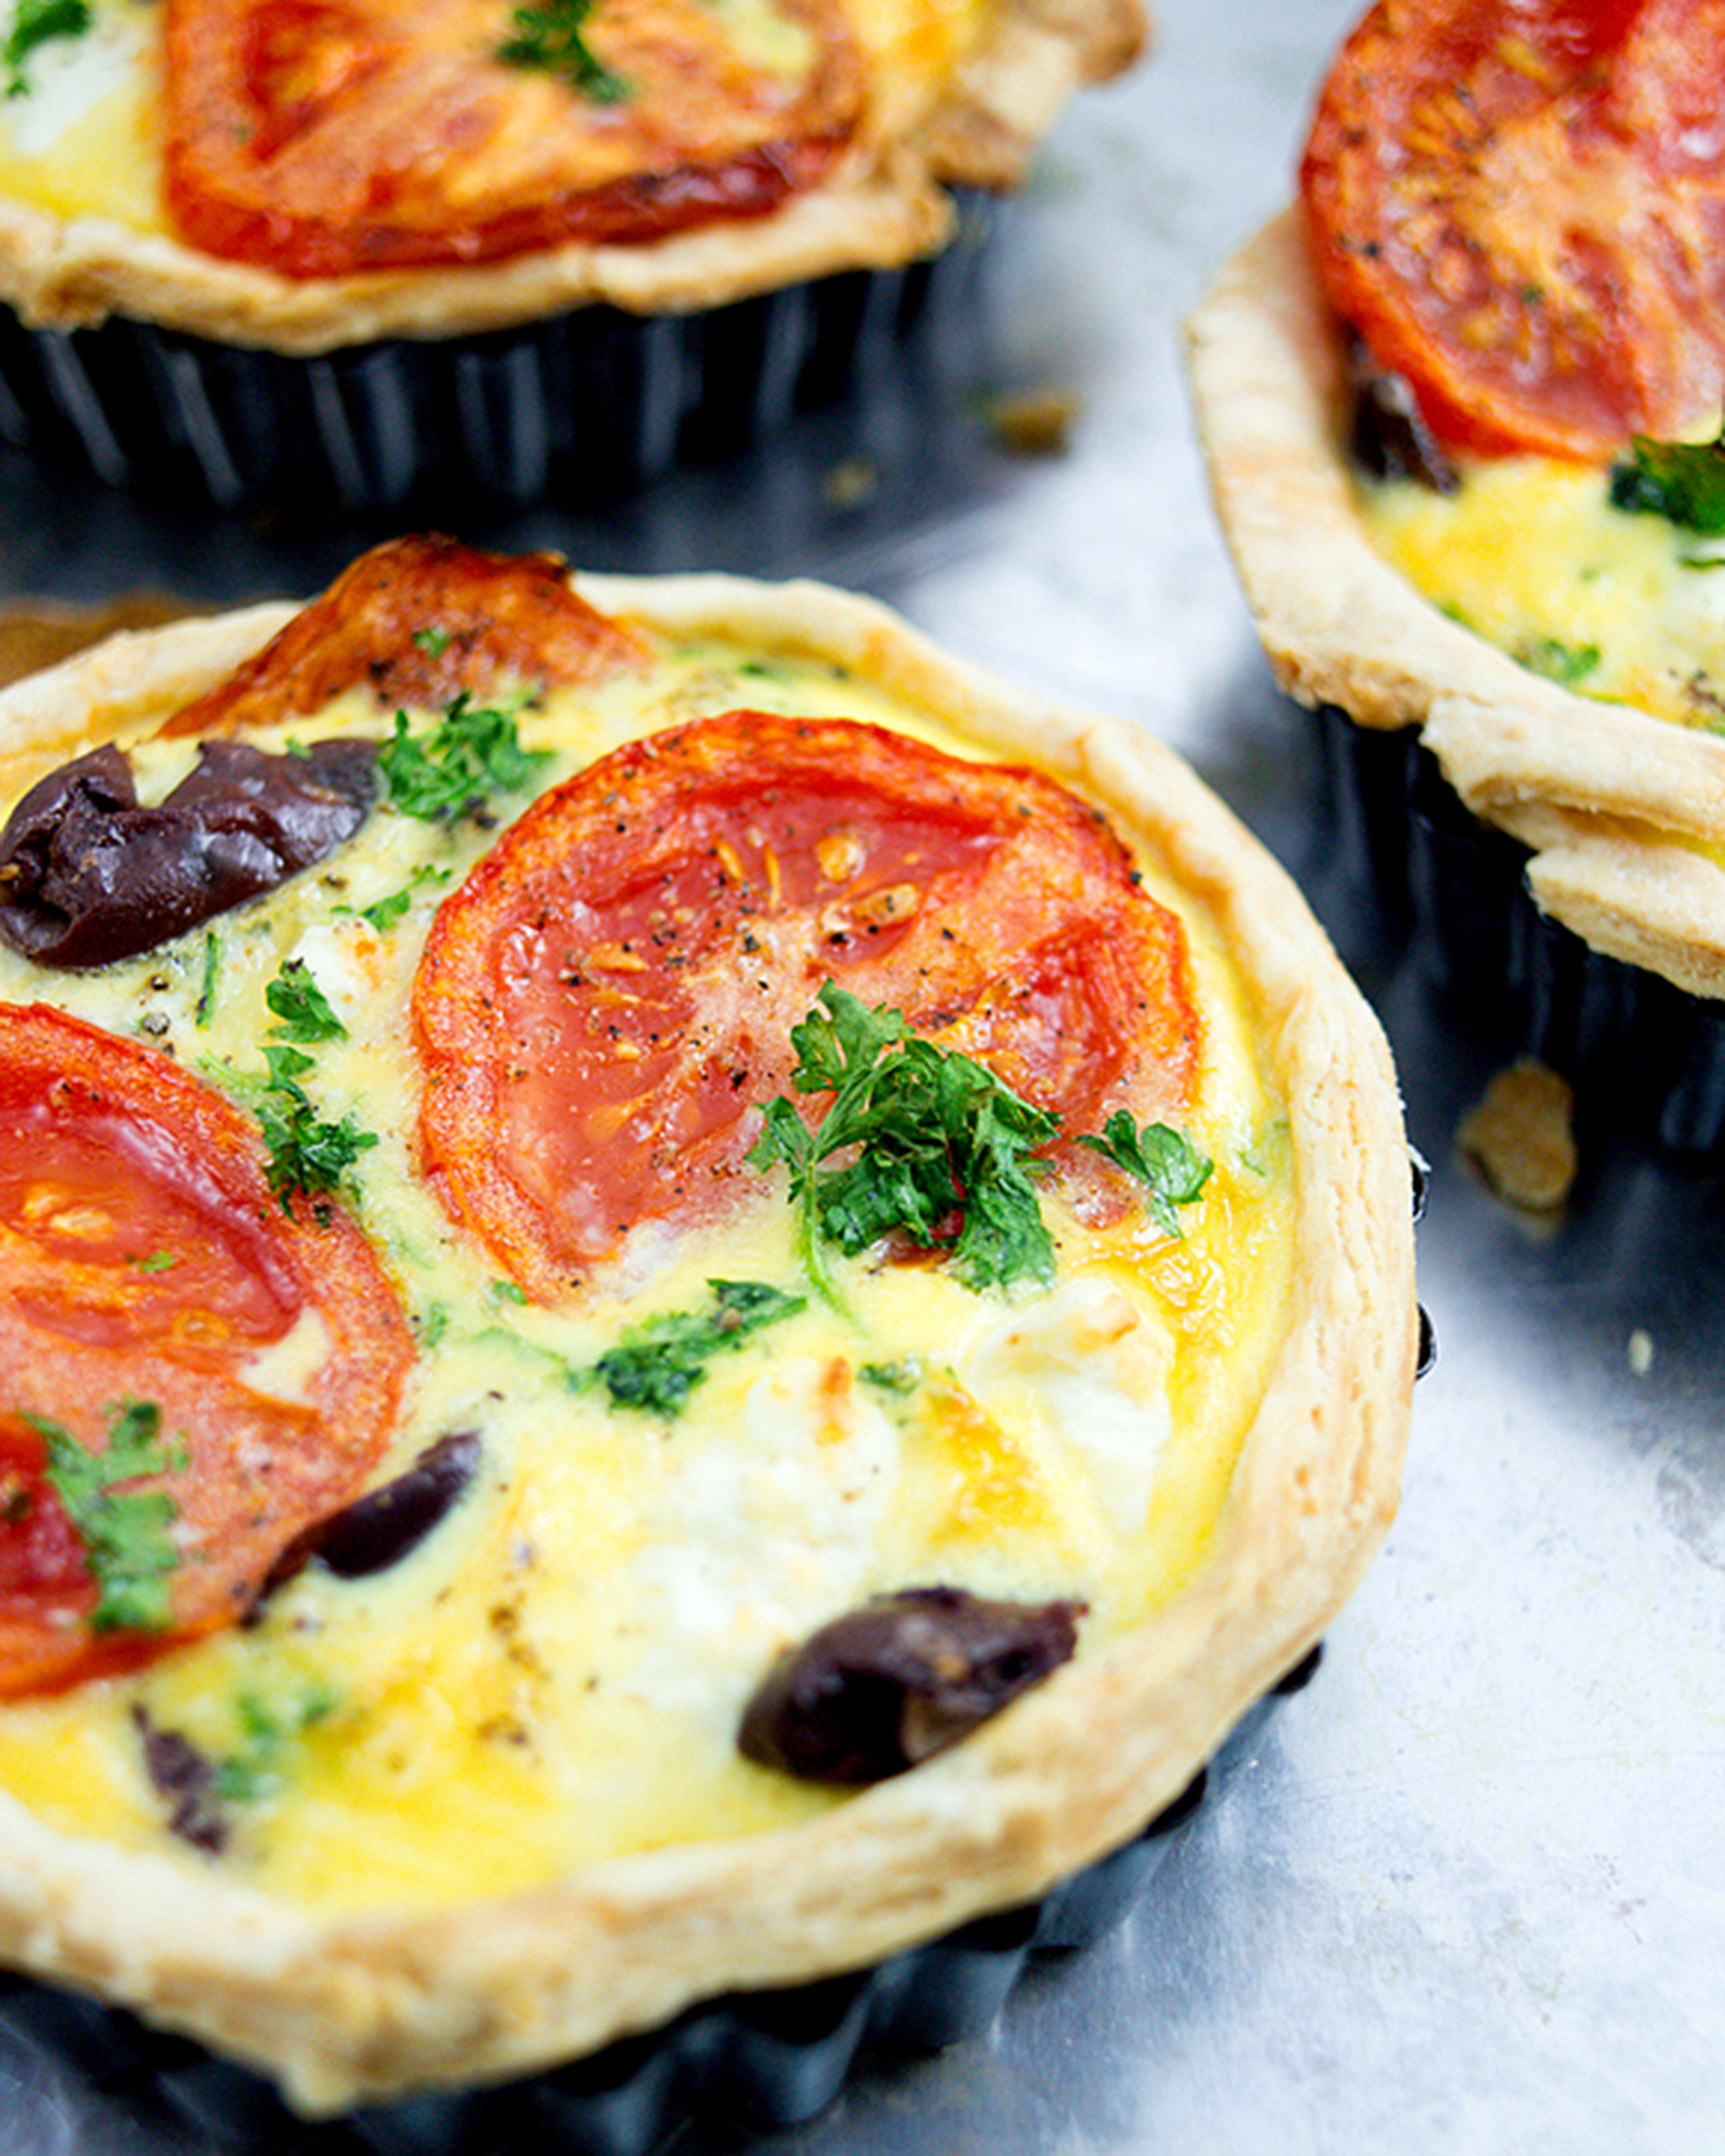 A photo of a serving of delicious fresh tomato and olive quiche.